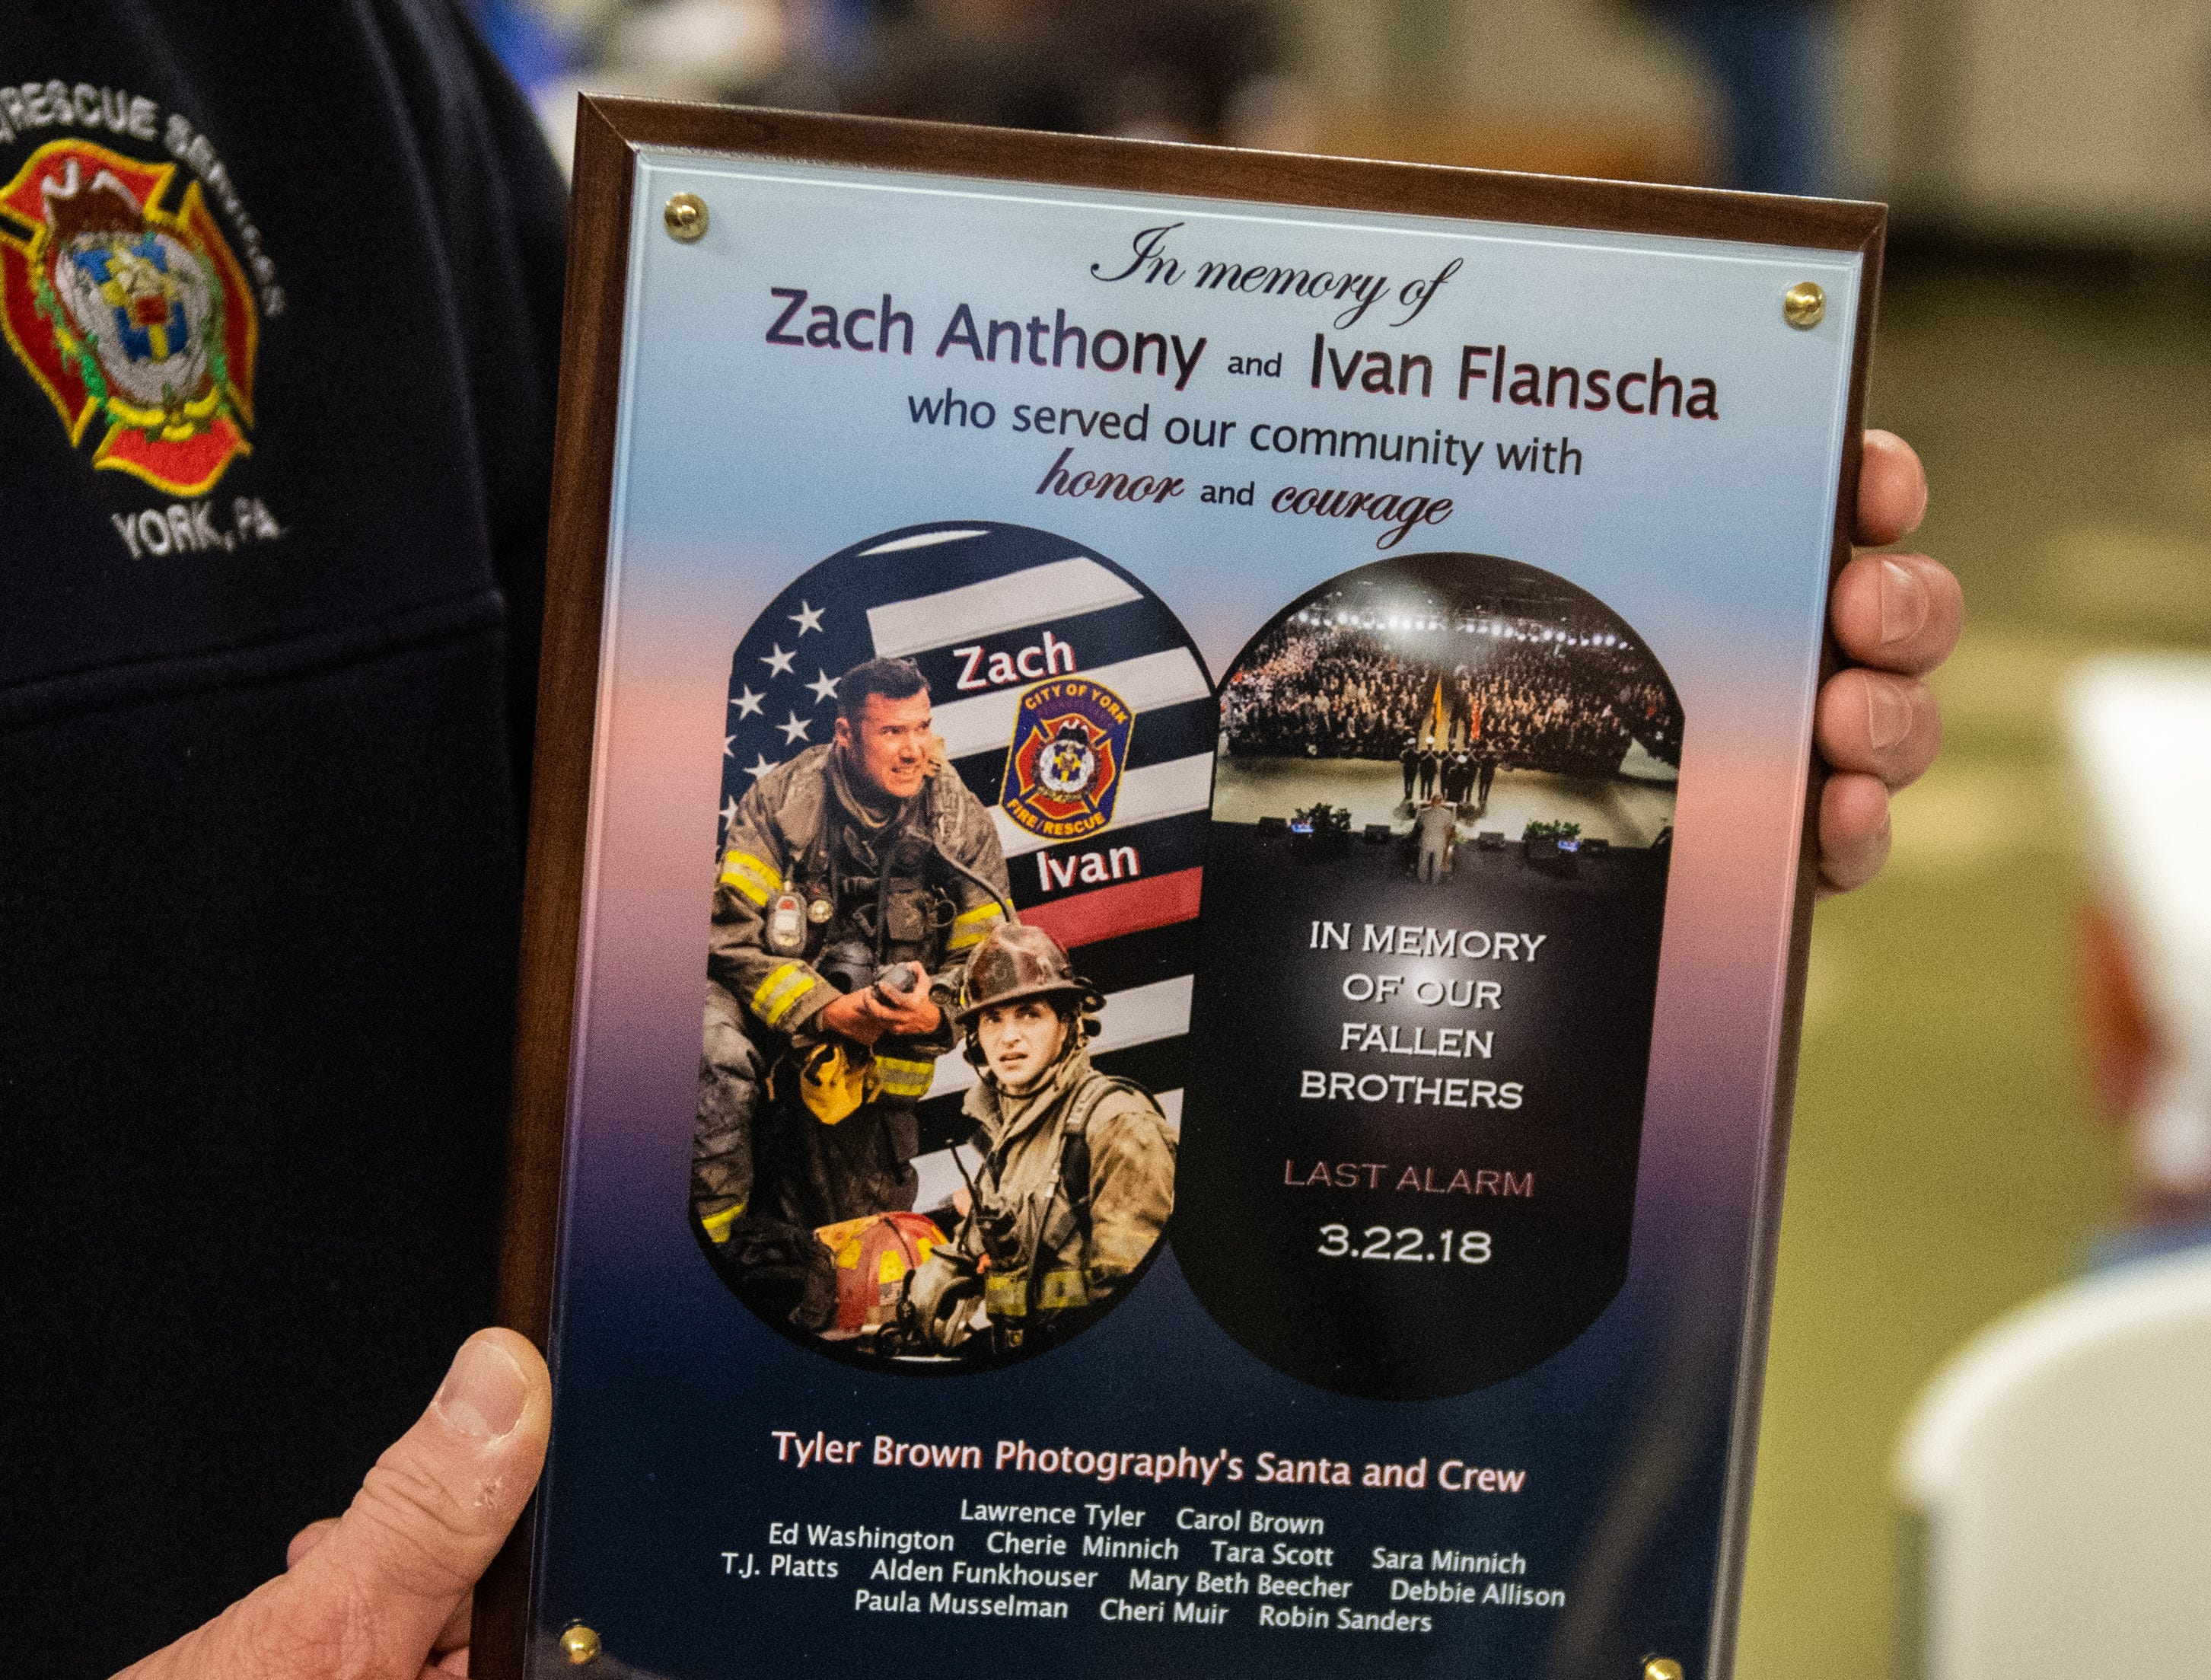 They were presented with a plaque created by Tyler Brown Photography honoring their fallen brothers, Ivan Flanscha and Zachary Anthony.